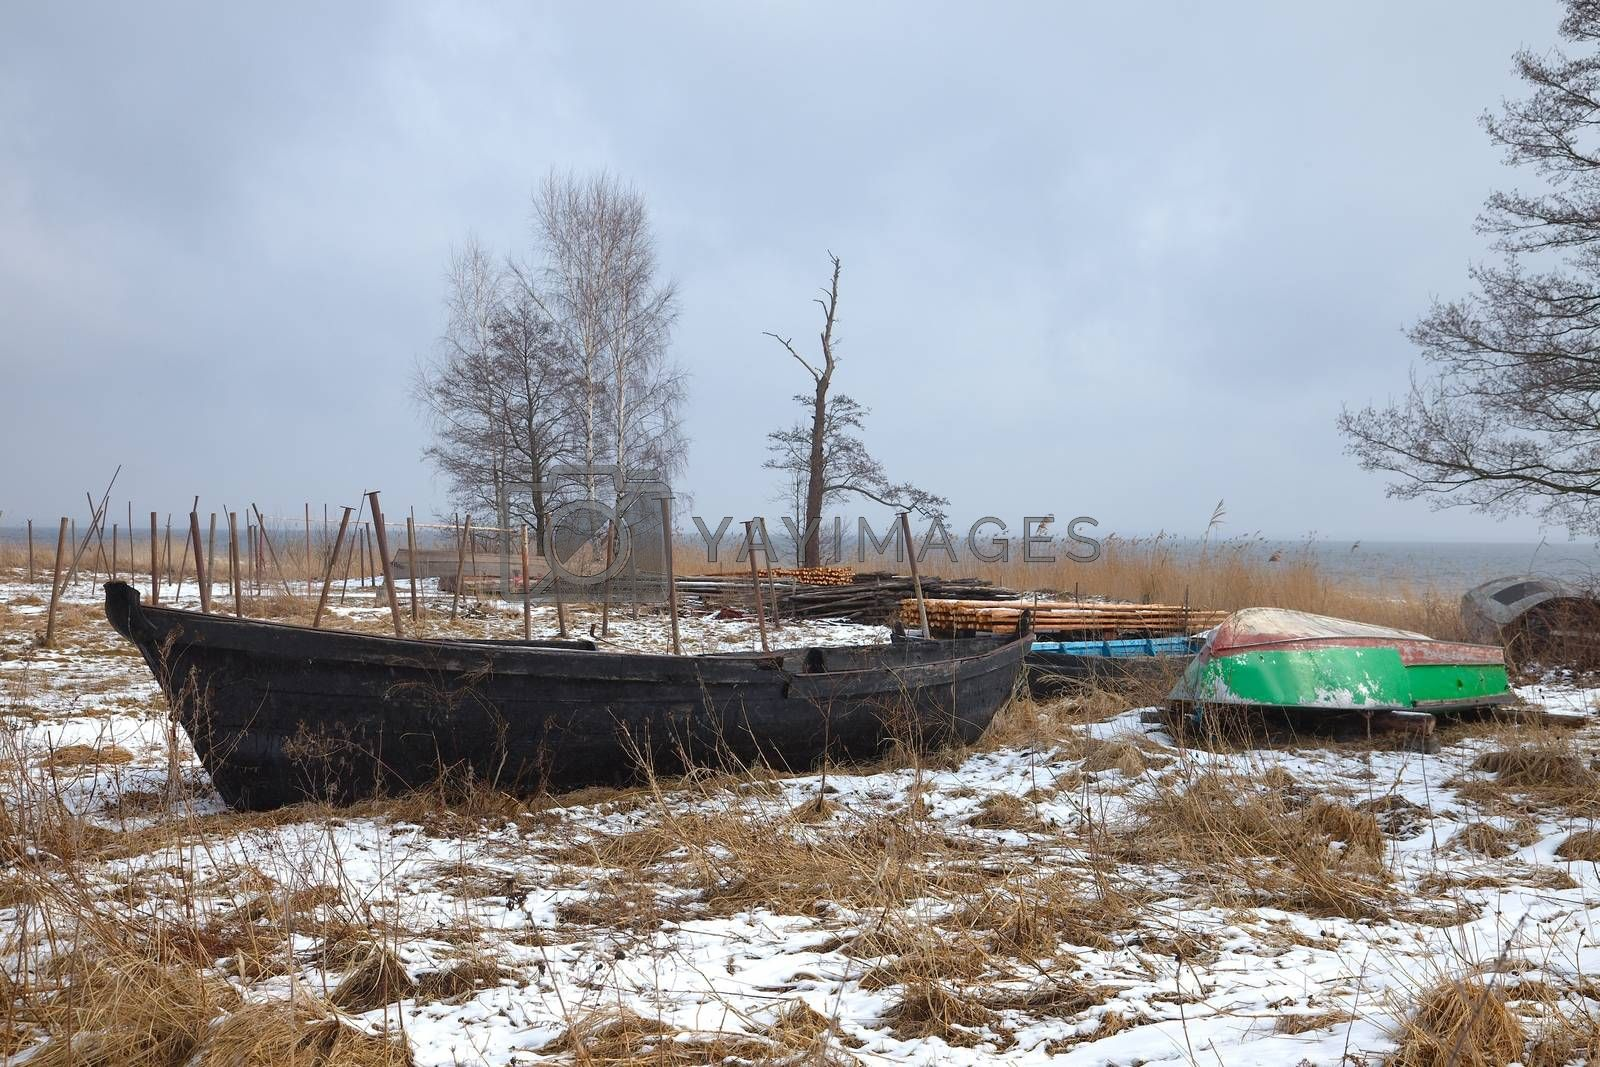 Boats on the hore in winter